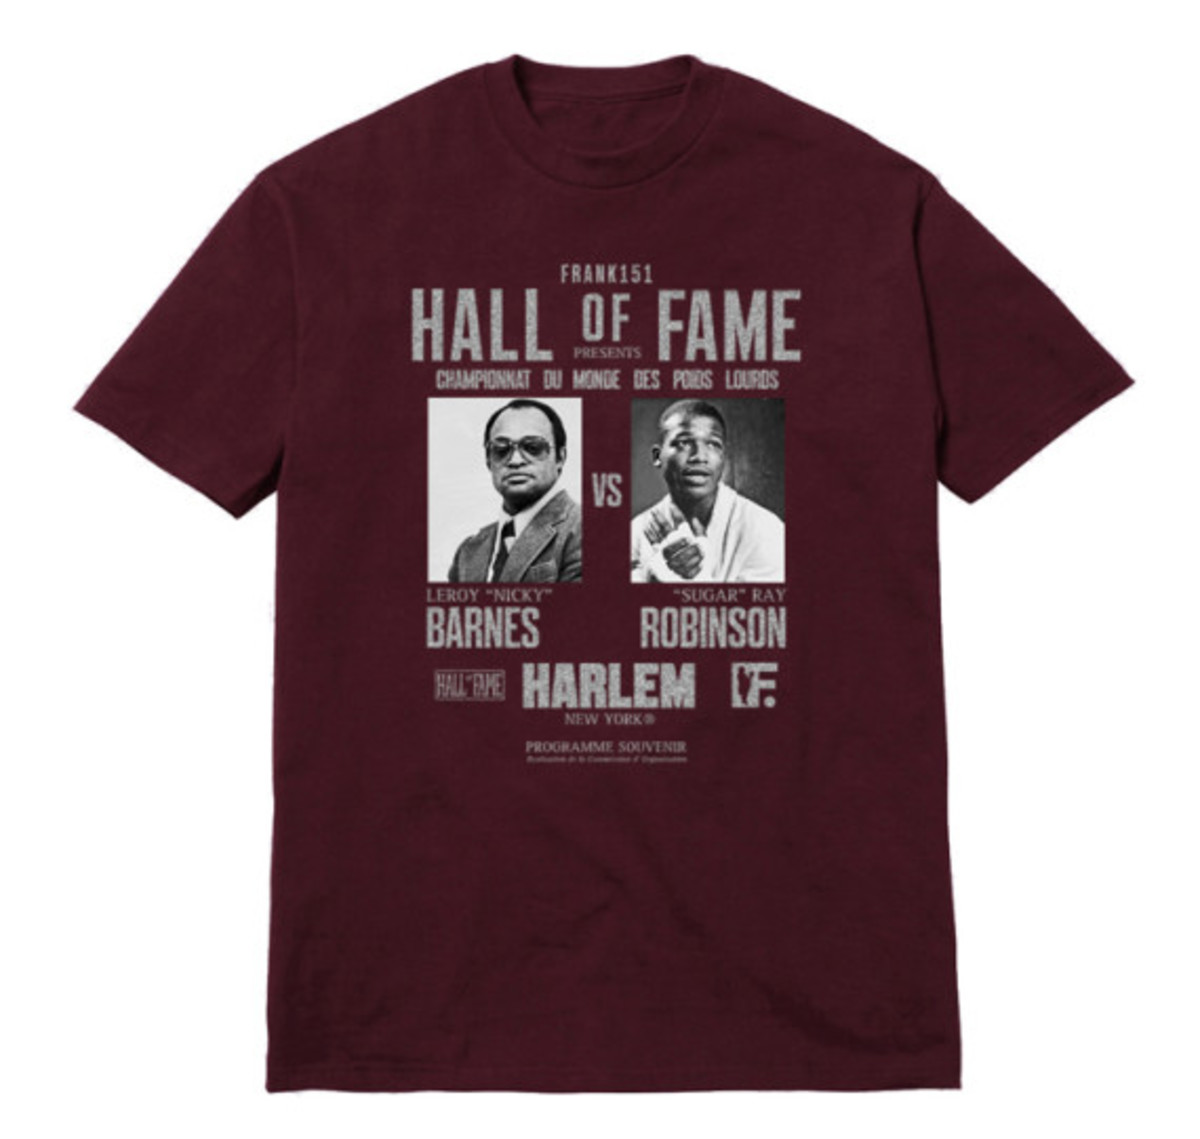 frank151-hall-of-fame-collection-04